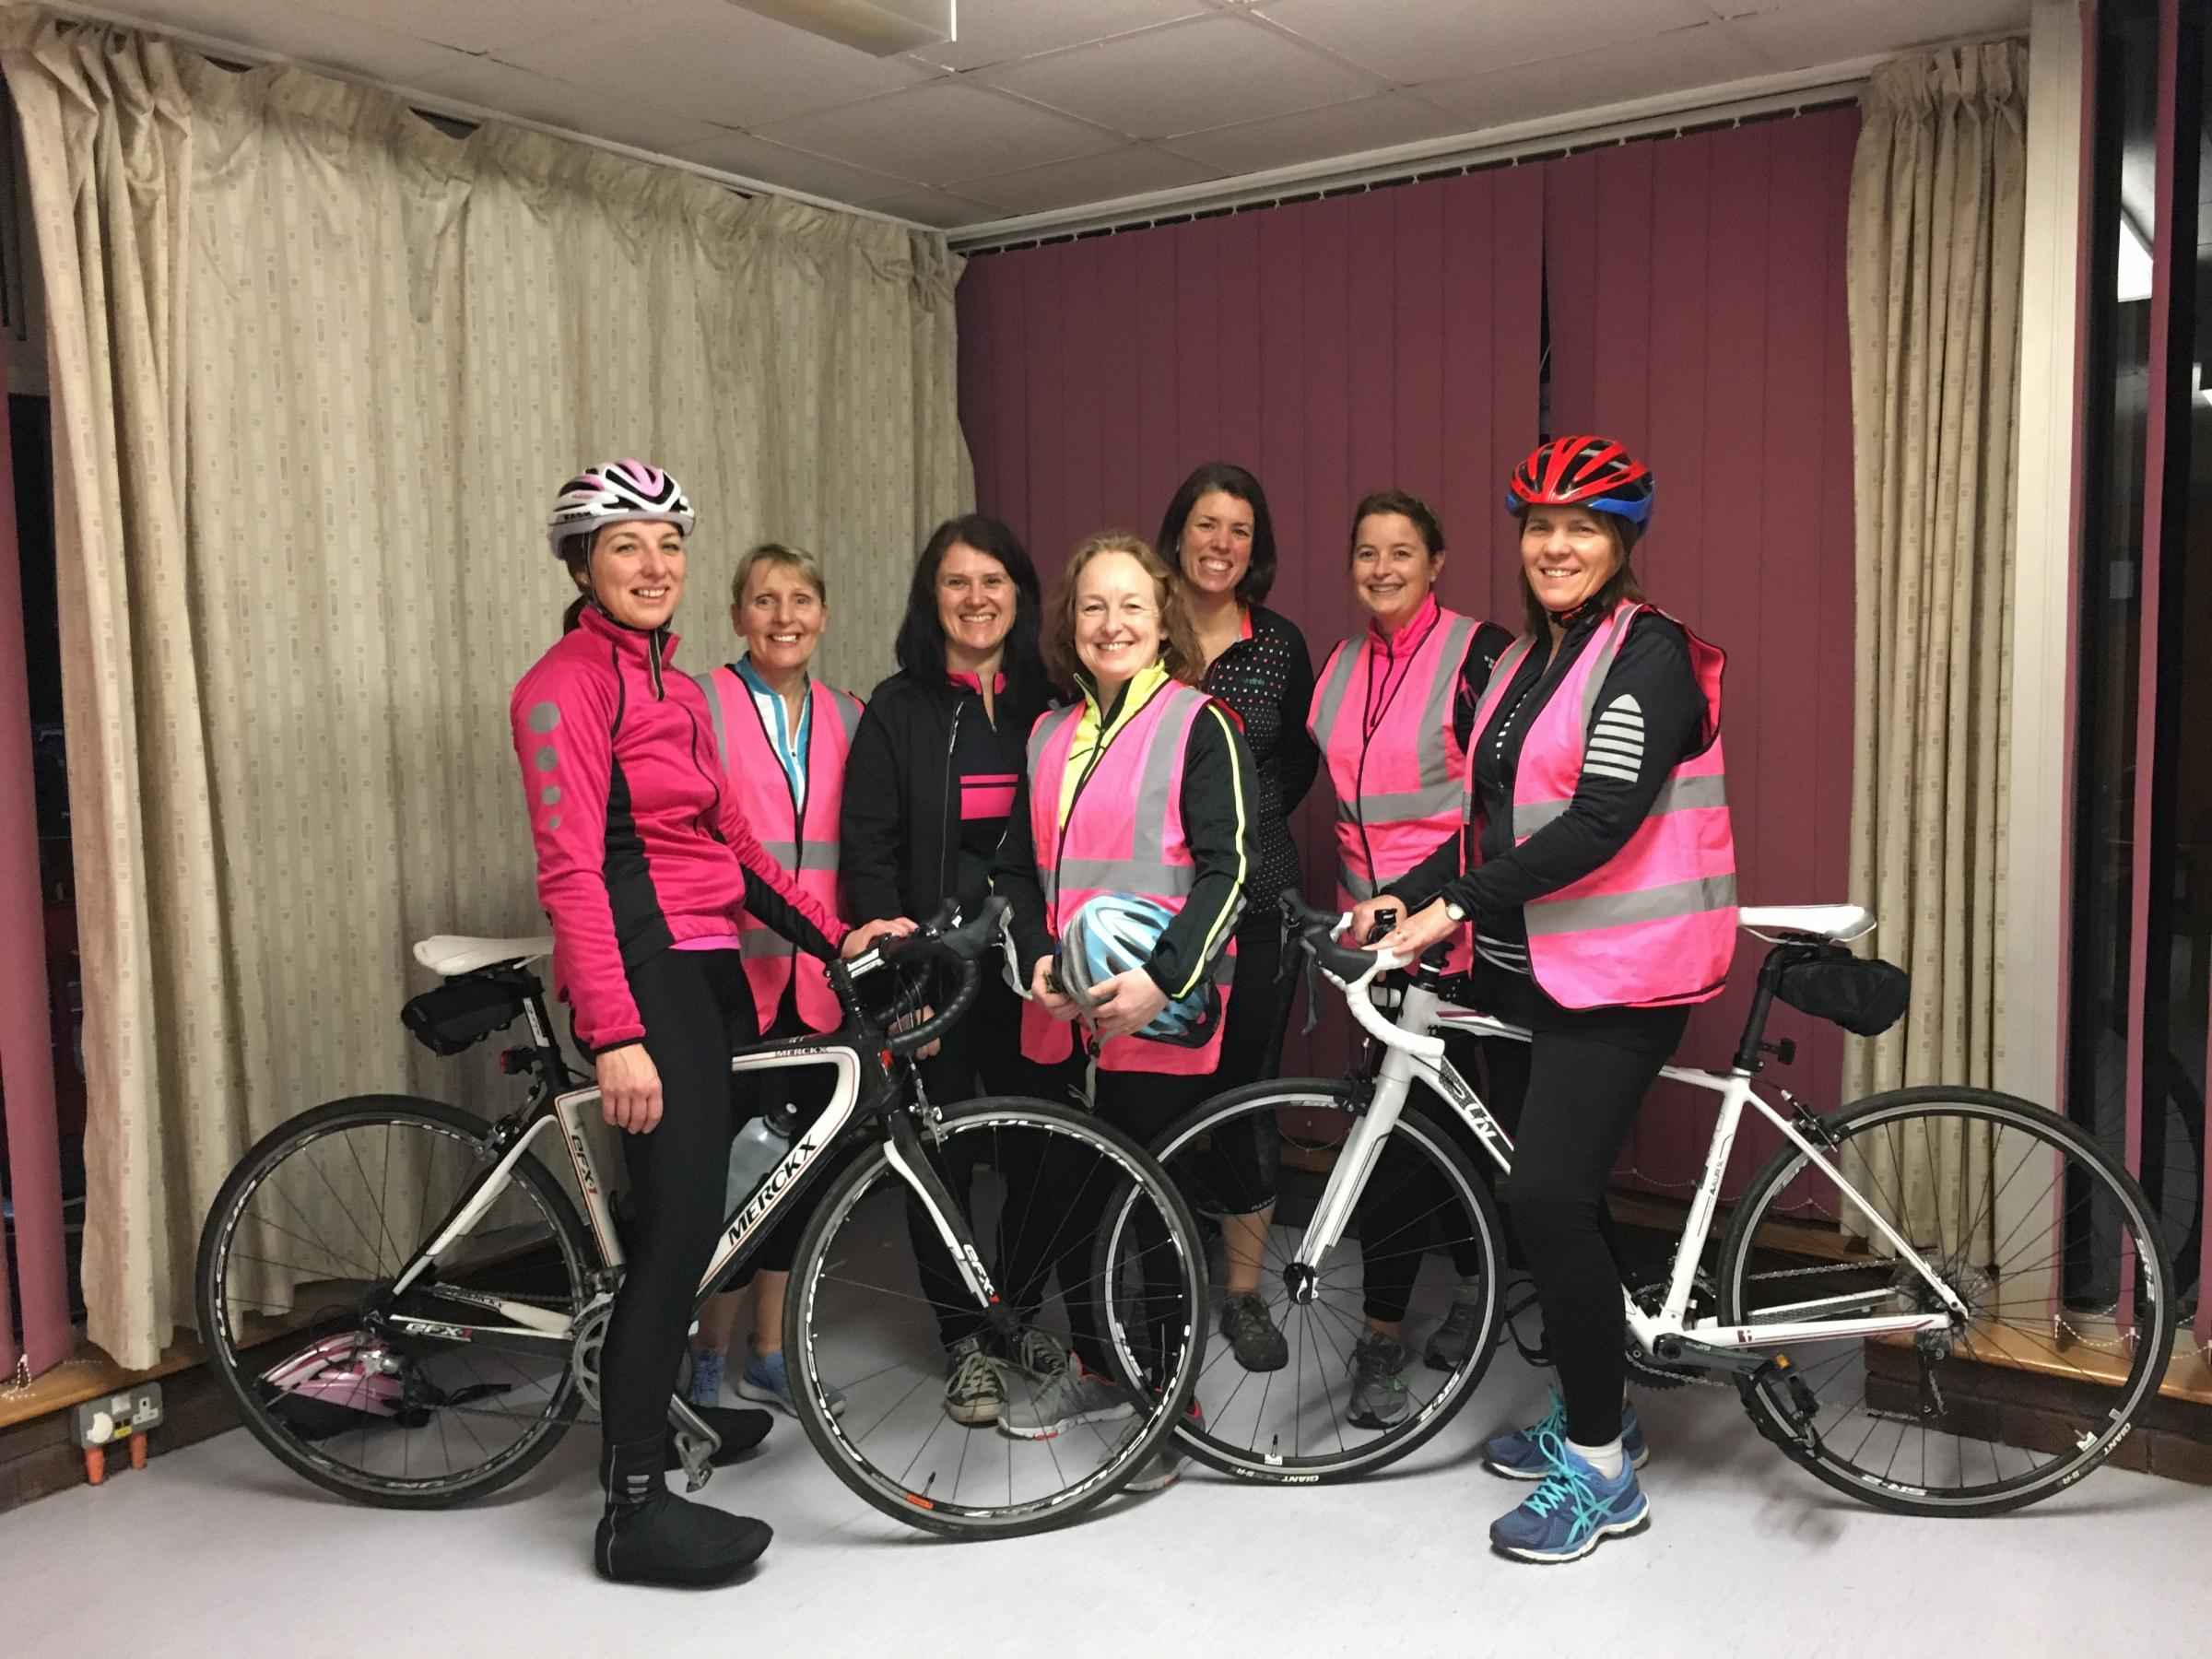 GIRLS: L-R Wendy Scrimgeour, Mandy Jones, Pippa Nicholas, Haf Lane, Kate Taylor, Jo Price and Brydon Williams. The missing rider is Leanne Ball